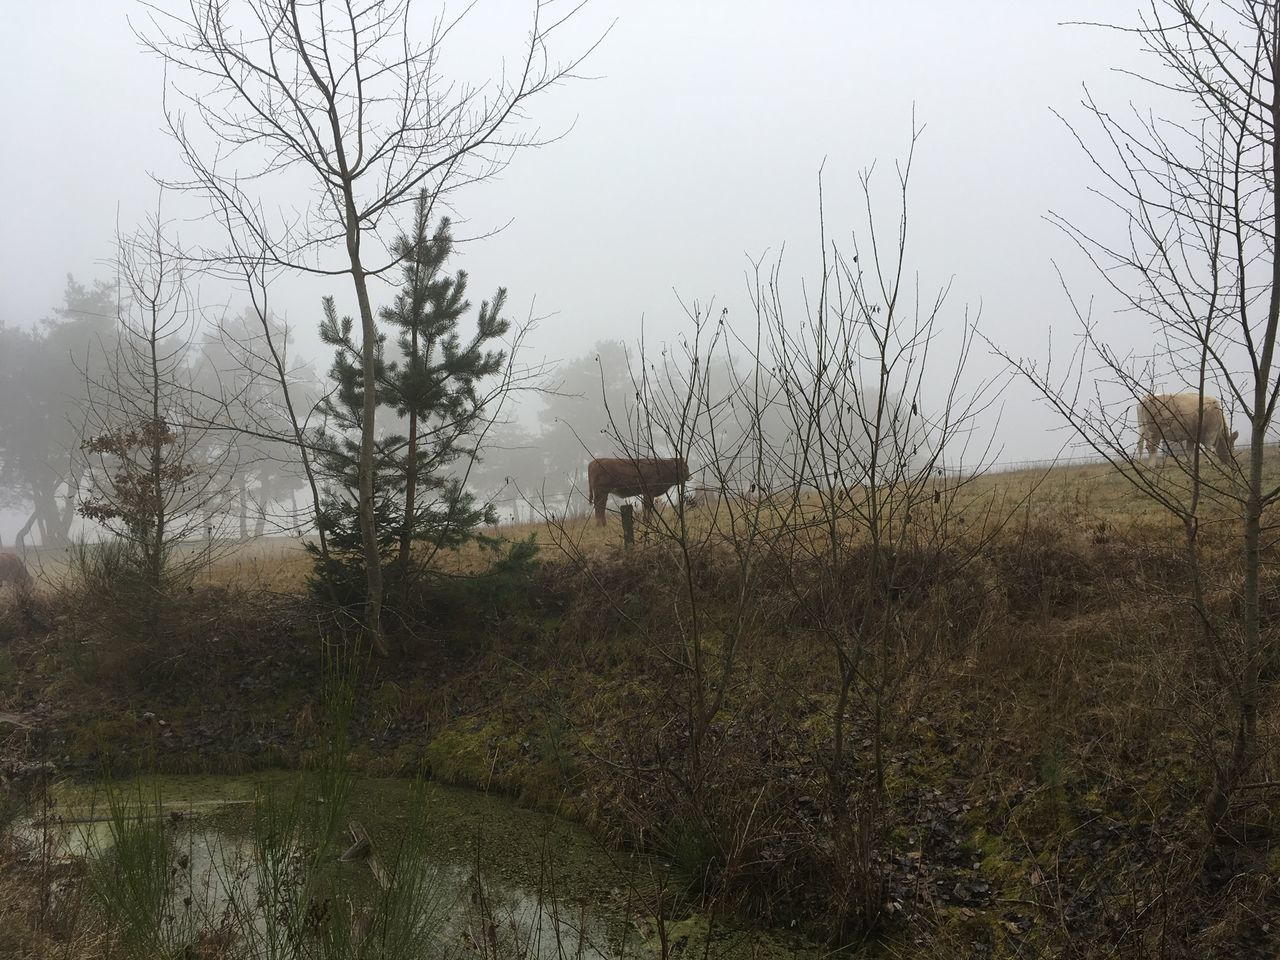 Cows In A Field Fog Foggy Day Green Water Misty Day Pond Reflections In The Water Winter Young Cow